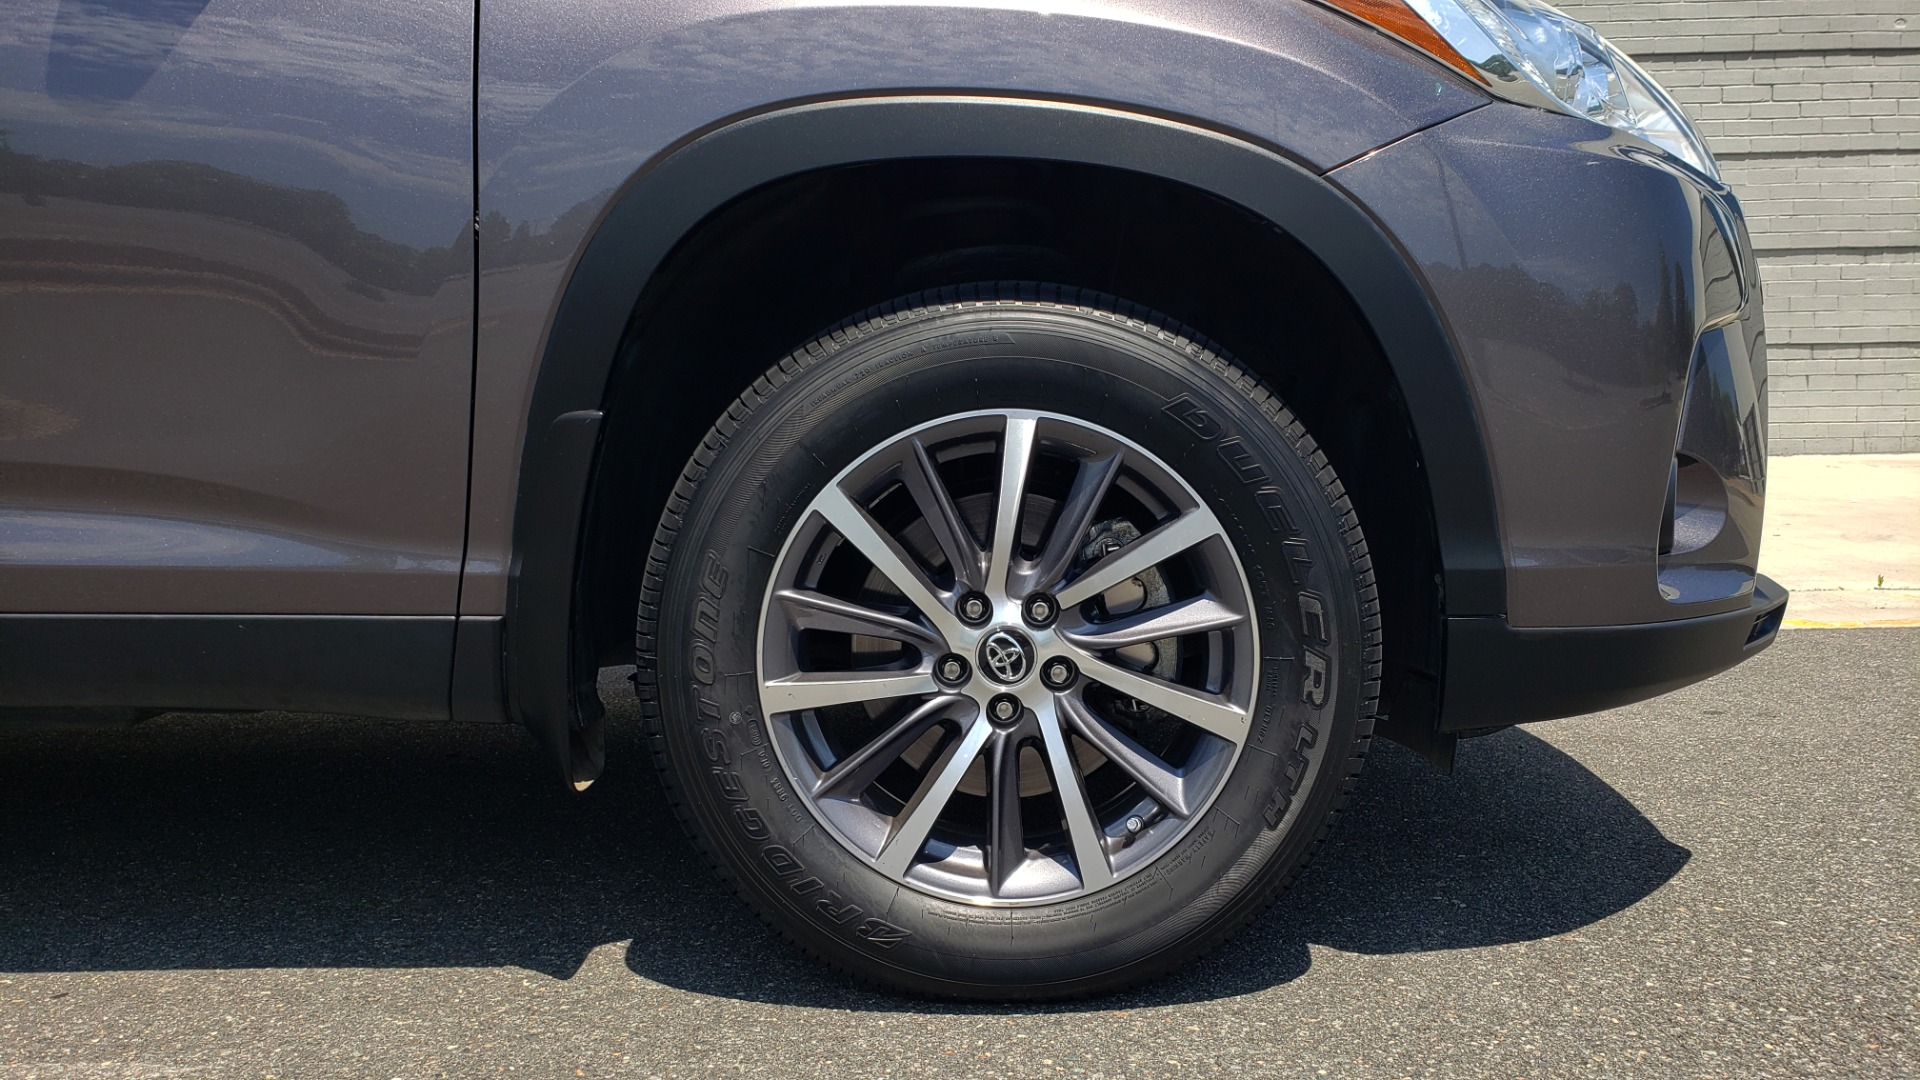 Used 2019 Toyota HIGHLANDER XLE / 3.5L V6 / AWD / LEATHER / 8-SPD AUTO / 1-OWNER for sale $37,500 at Formula Imports in Charlotte NC 28227 83